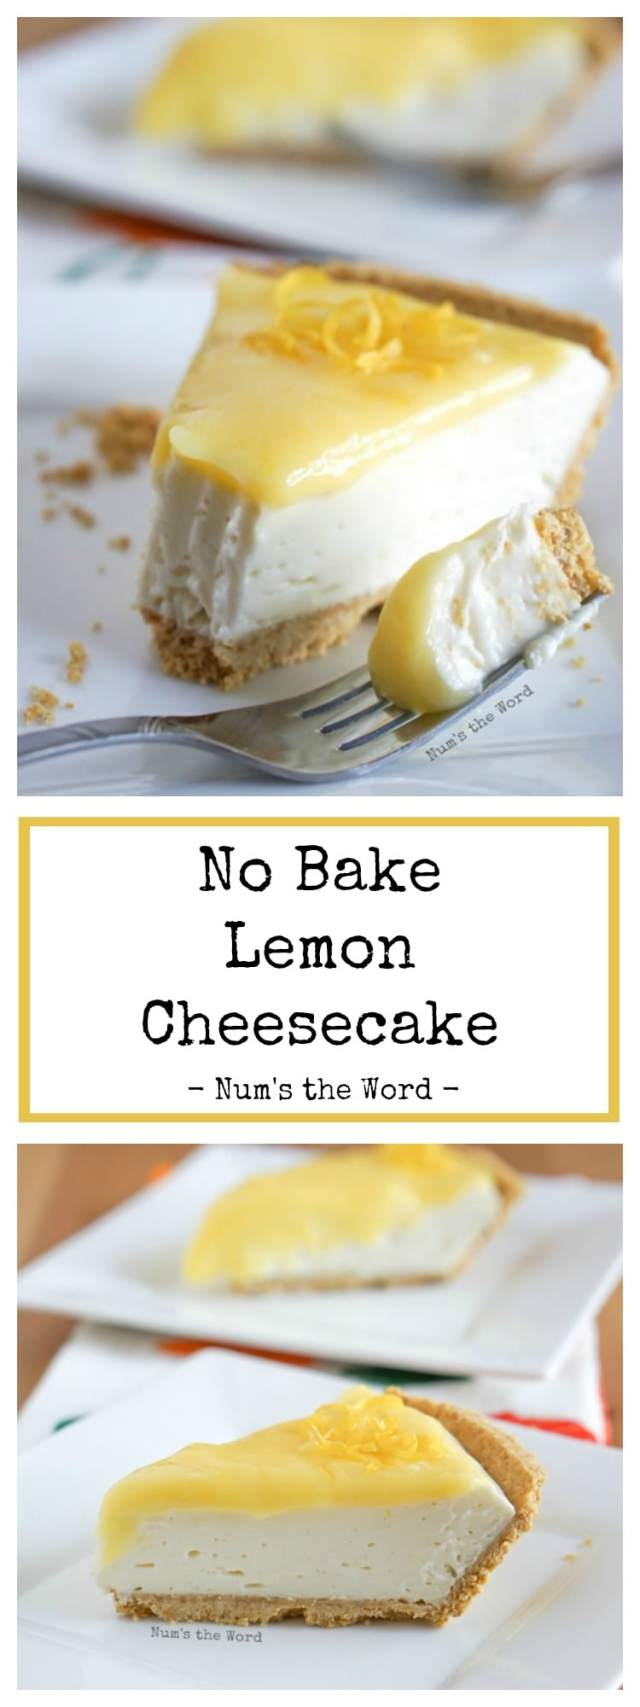 No Bake Lemon Cheesecake Collage Of Images For